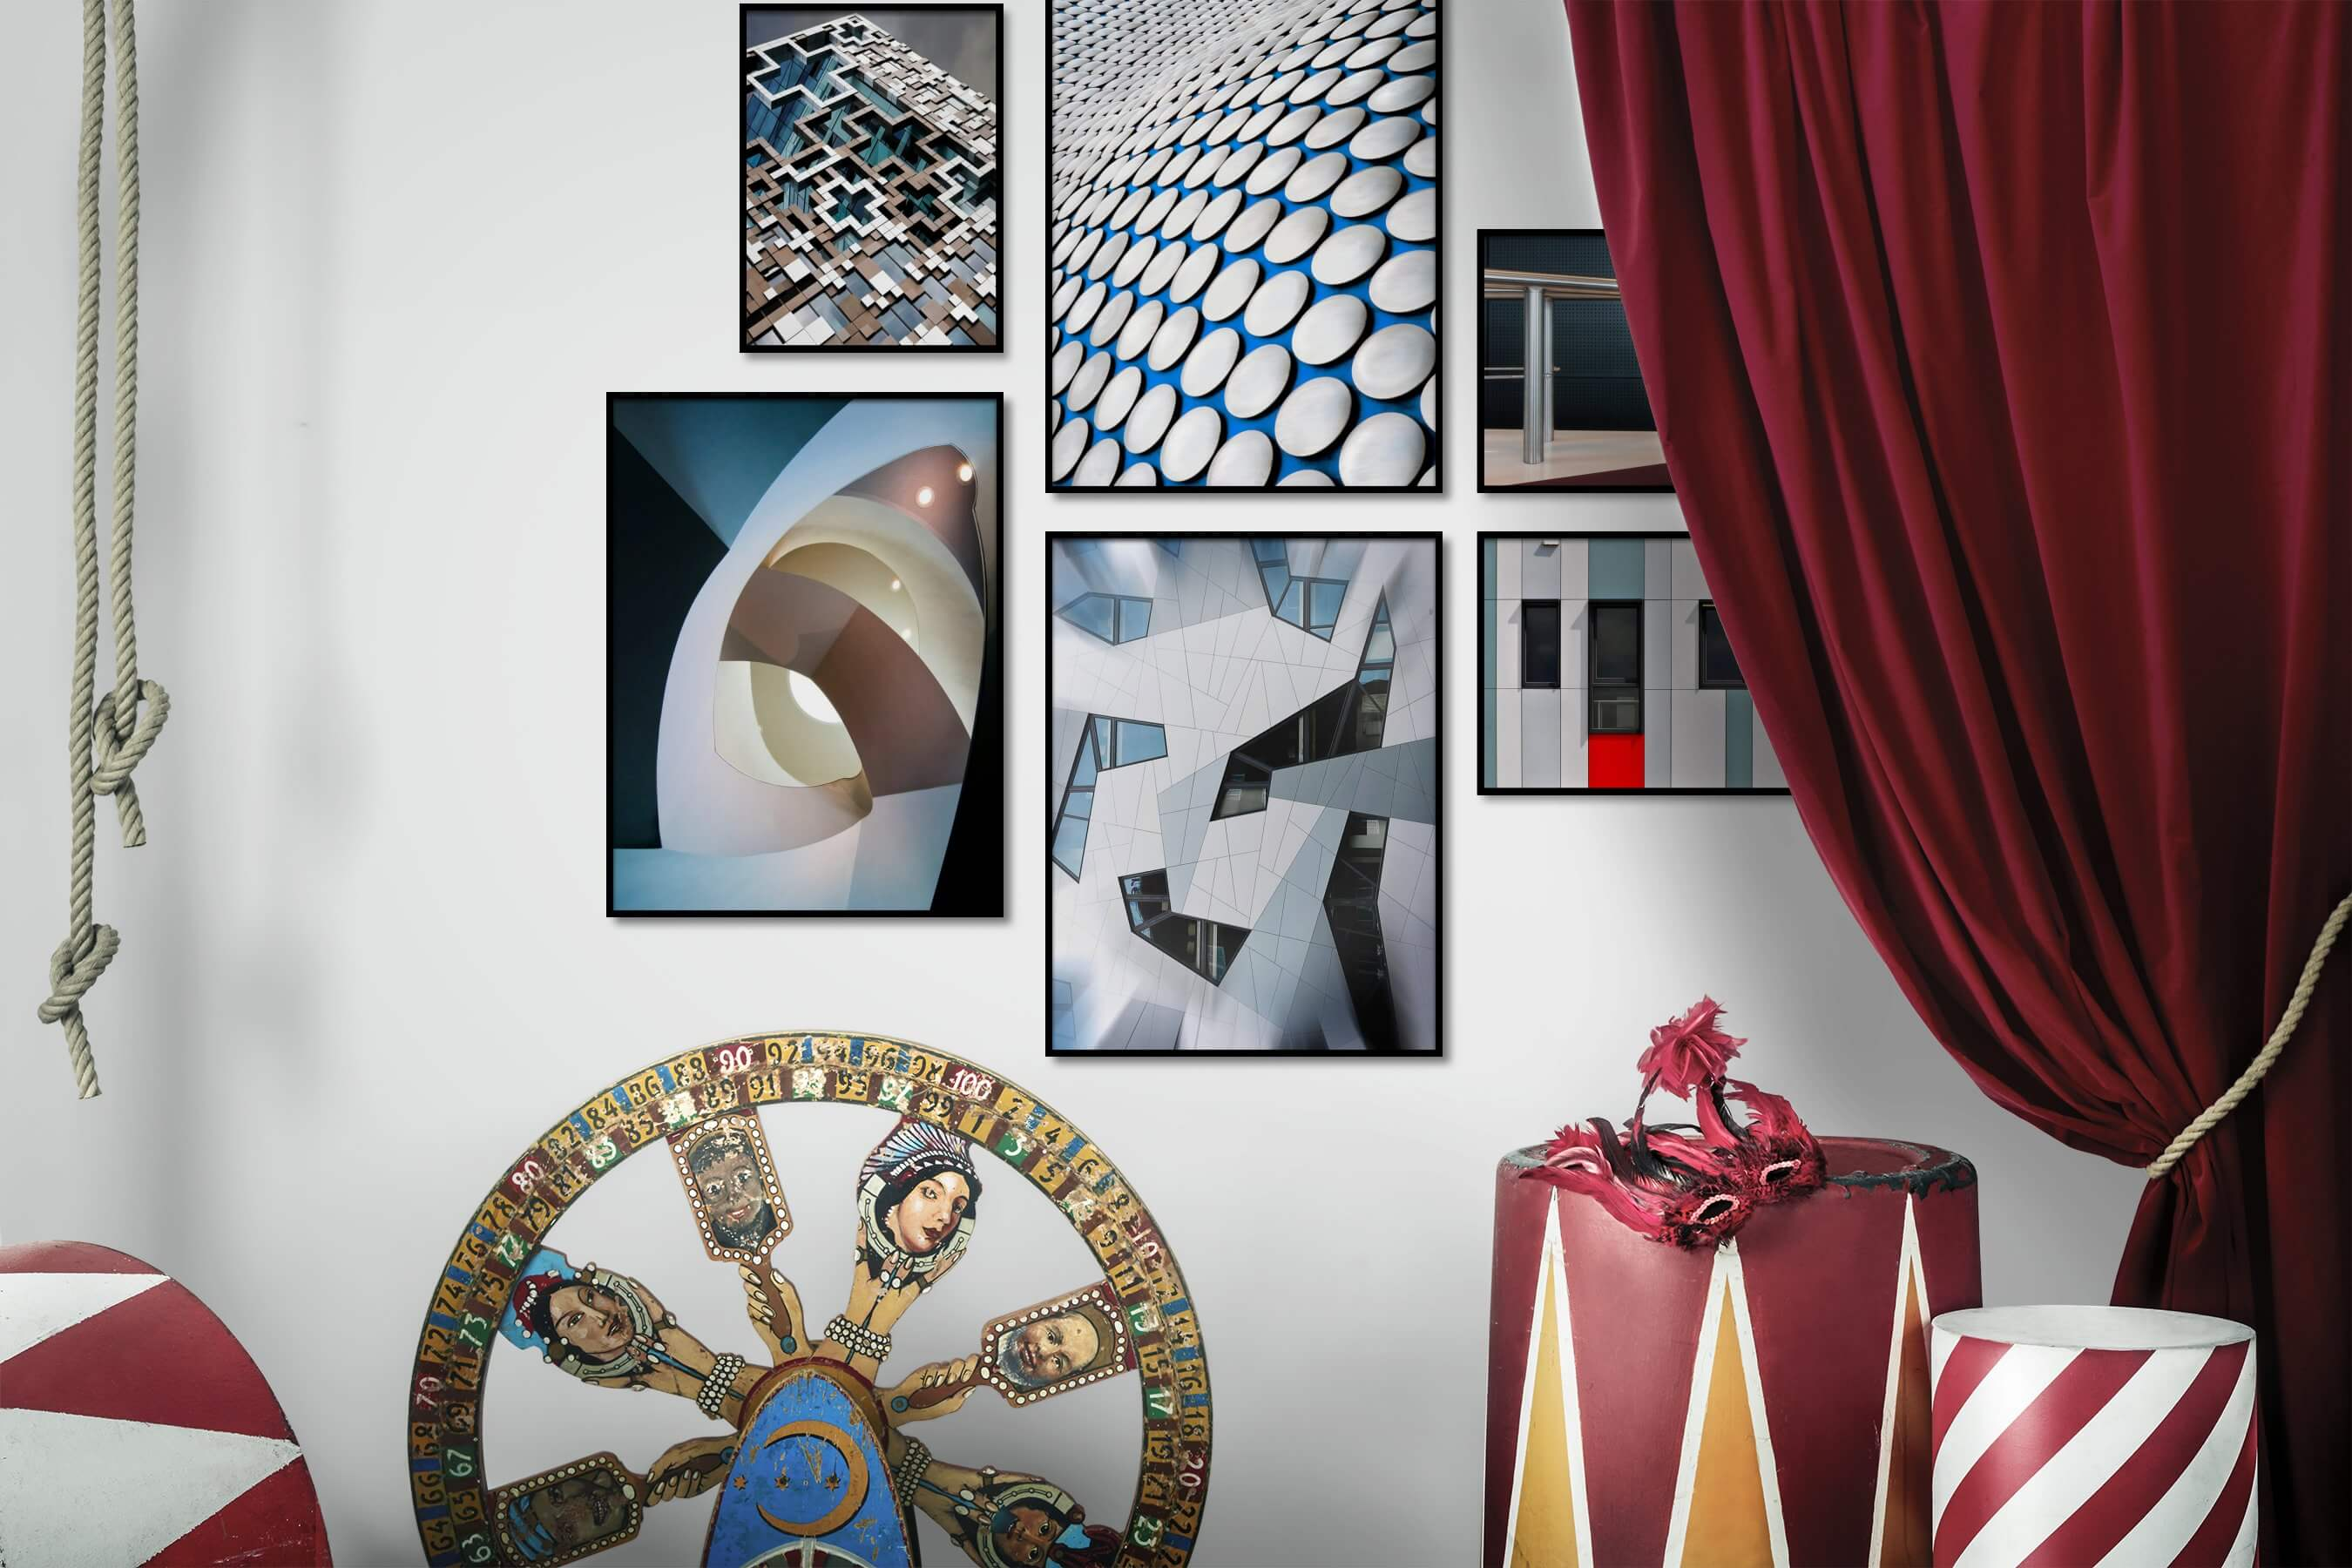 Gallery wall idea with six framed pictures arranged on a wall depicting For the Maximalist and For the Moderate